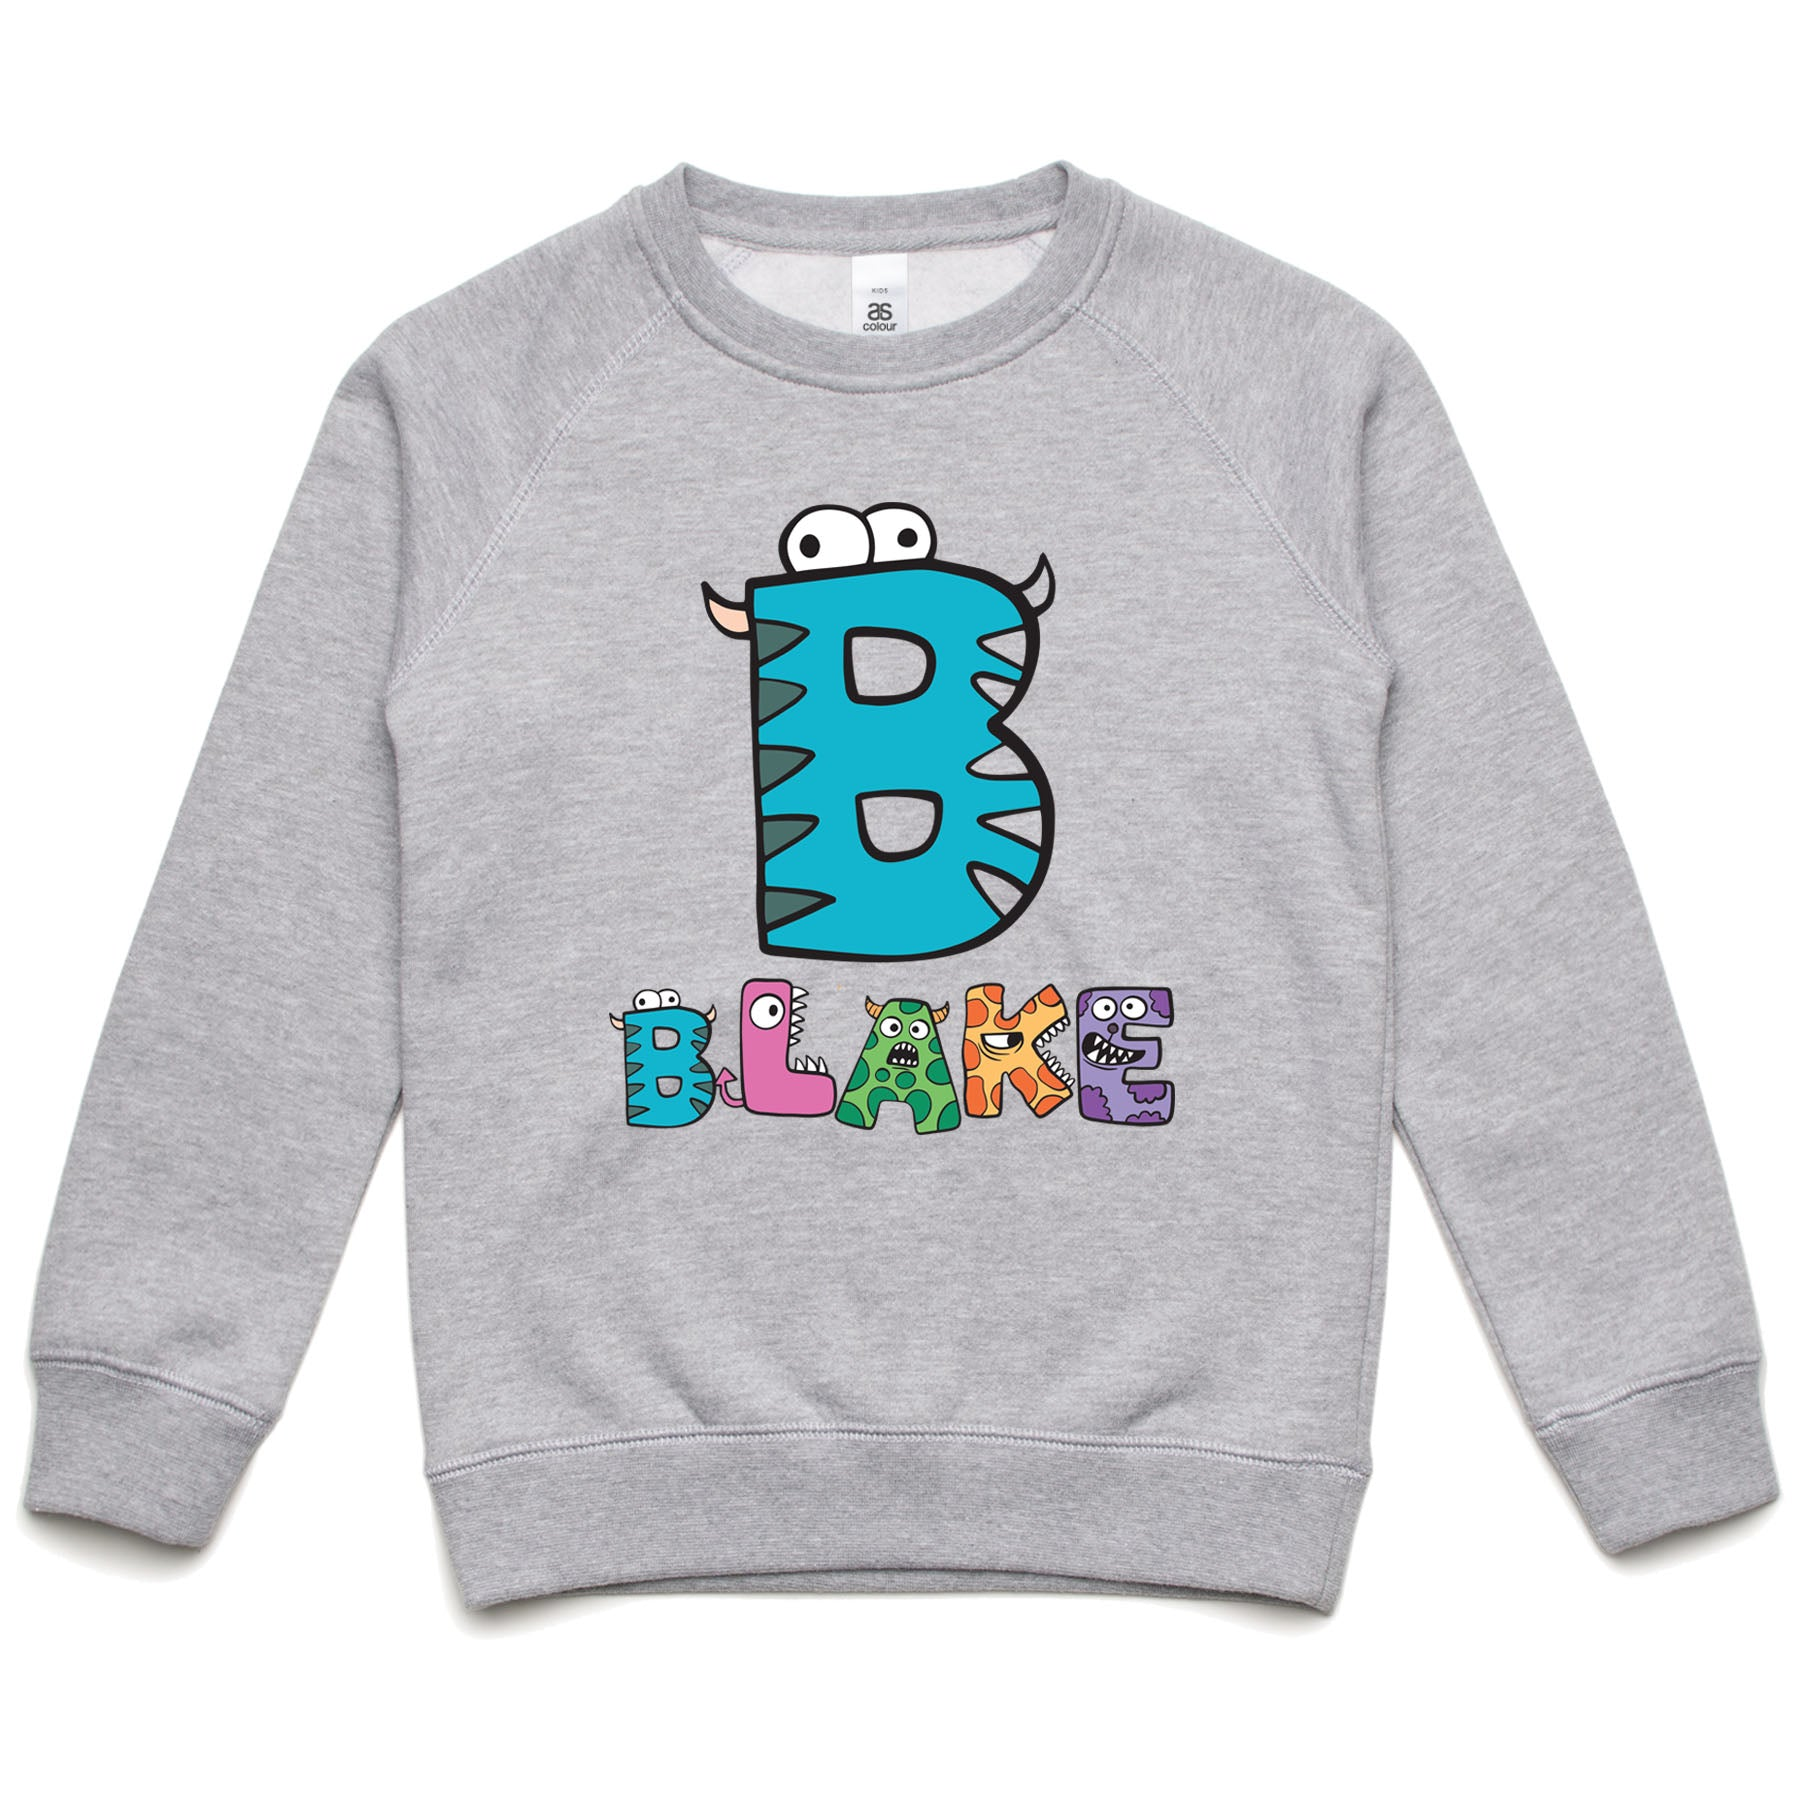 Personalised Kids Monster Sweatshirt